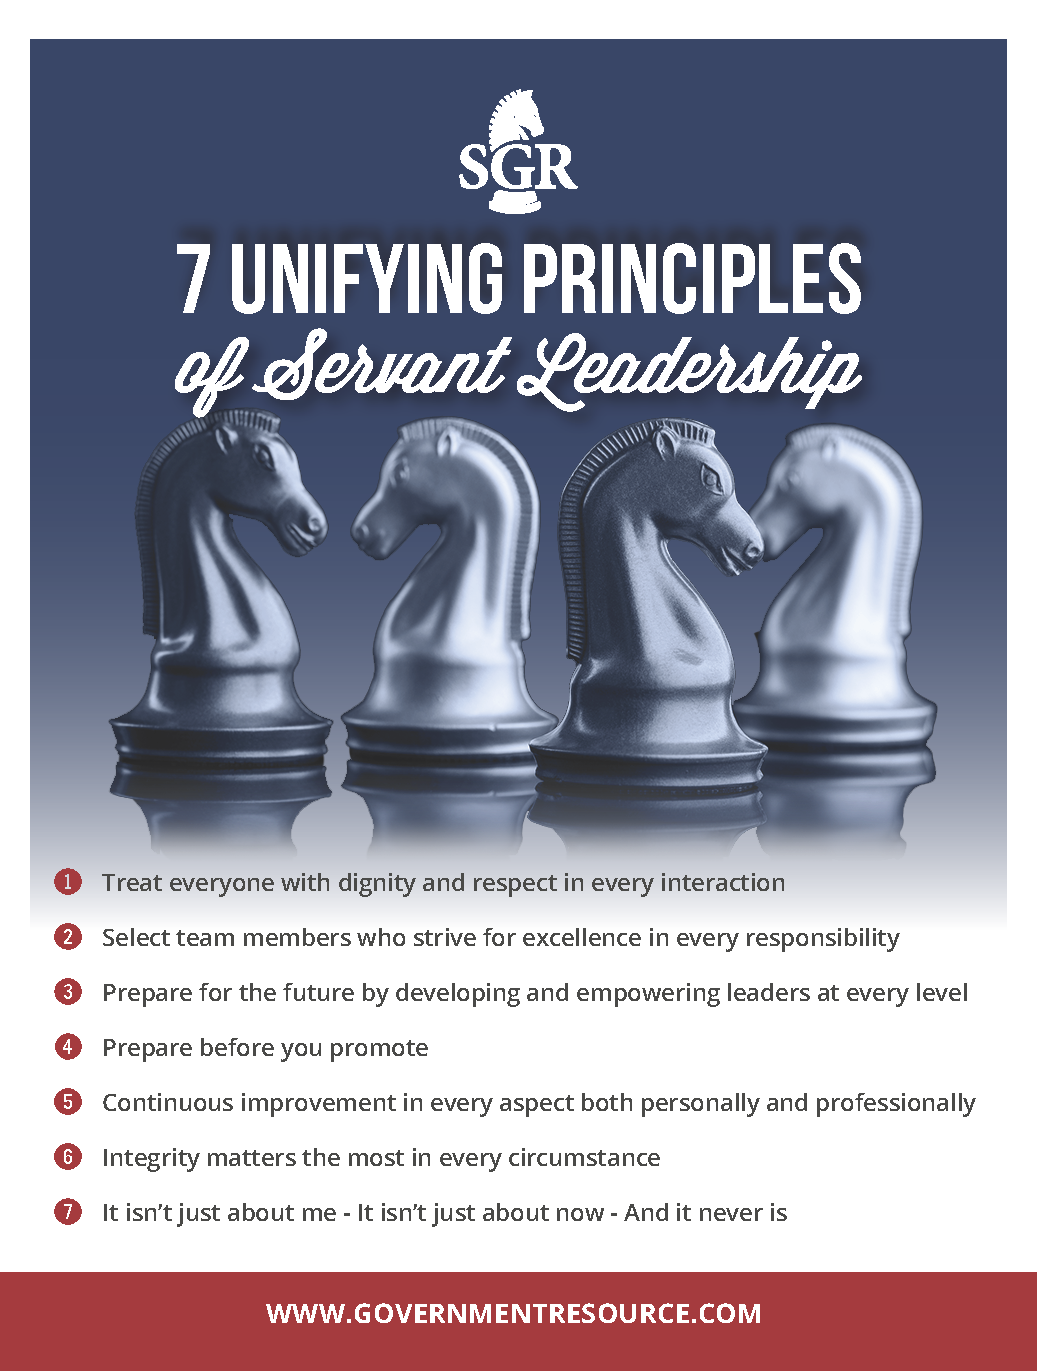 7 Unifying Princples of Servant Leadershp graphic